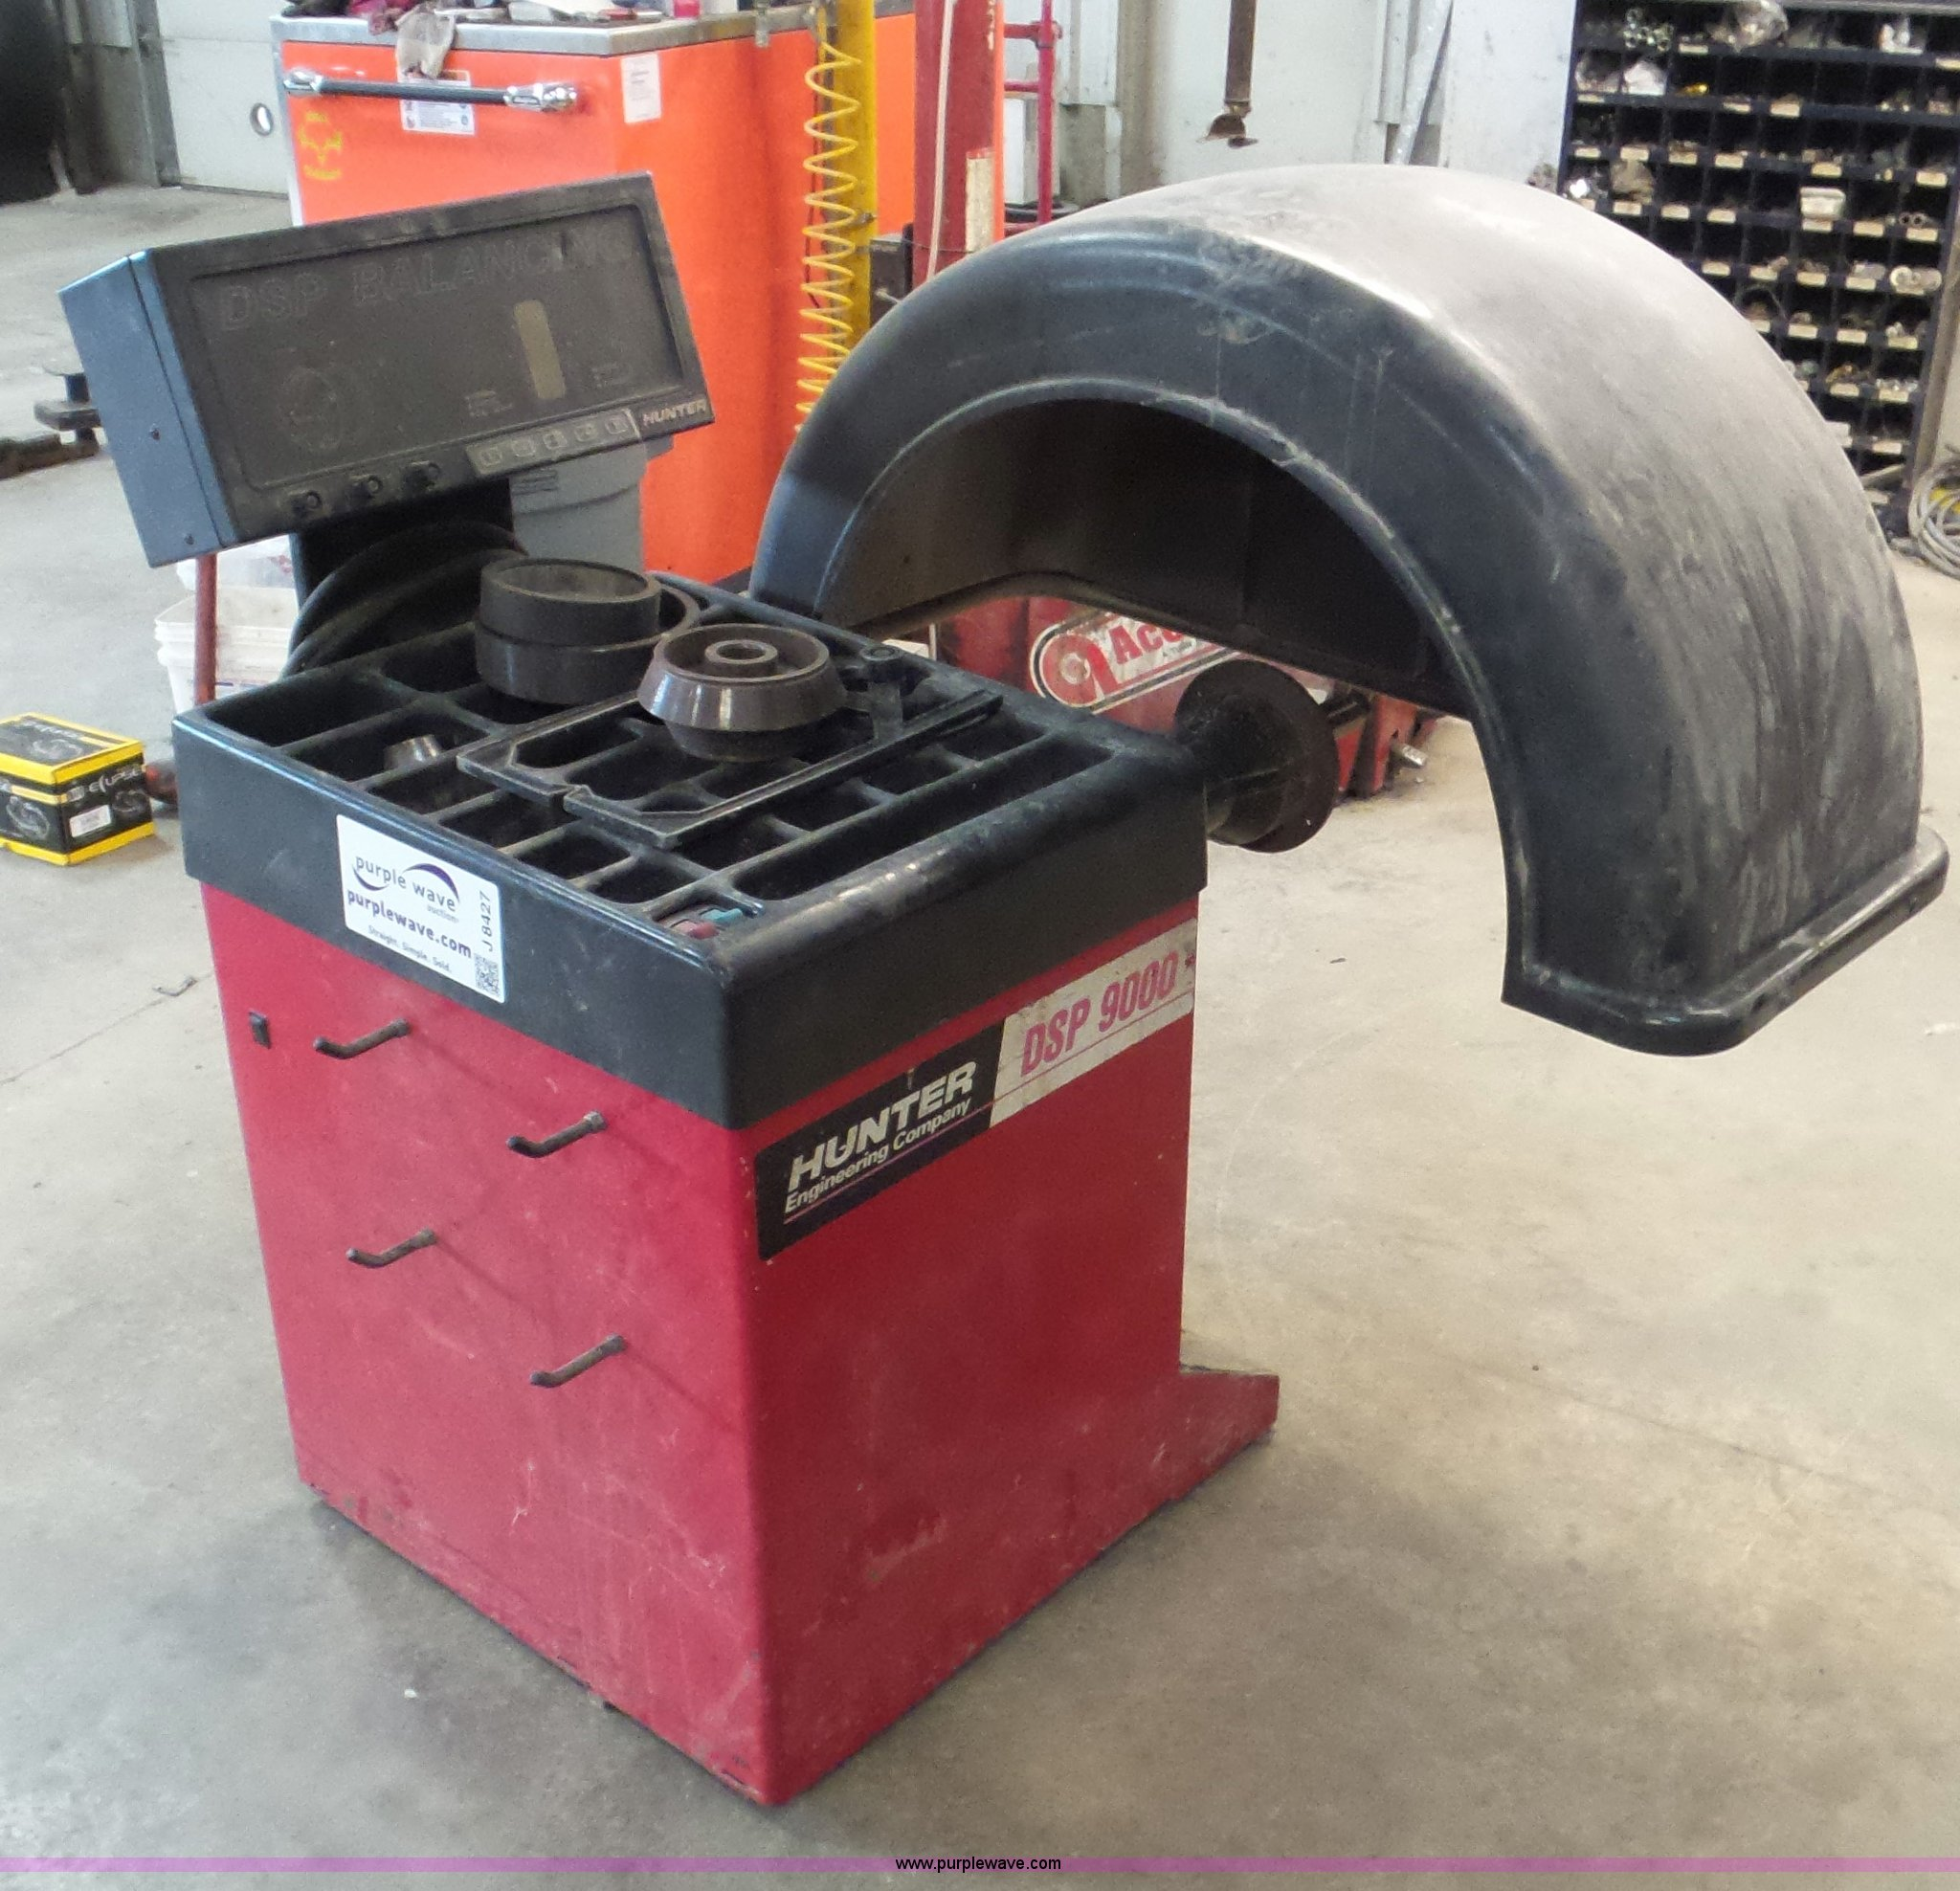 hunter dsp9000 tire balancer item j8427 sold march 9 ve rh purplewave com Hunter  Tire Balancer Parts Hunter Wheel Balancer Service Manual